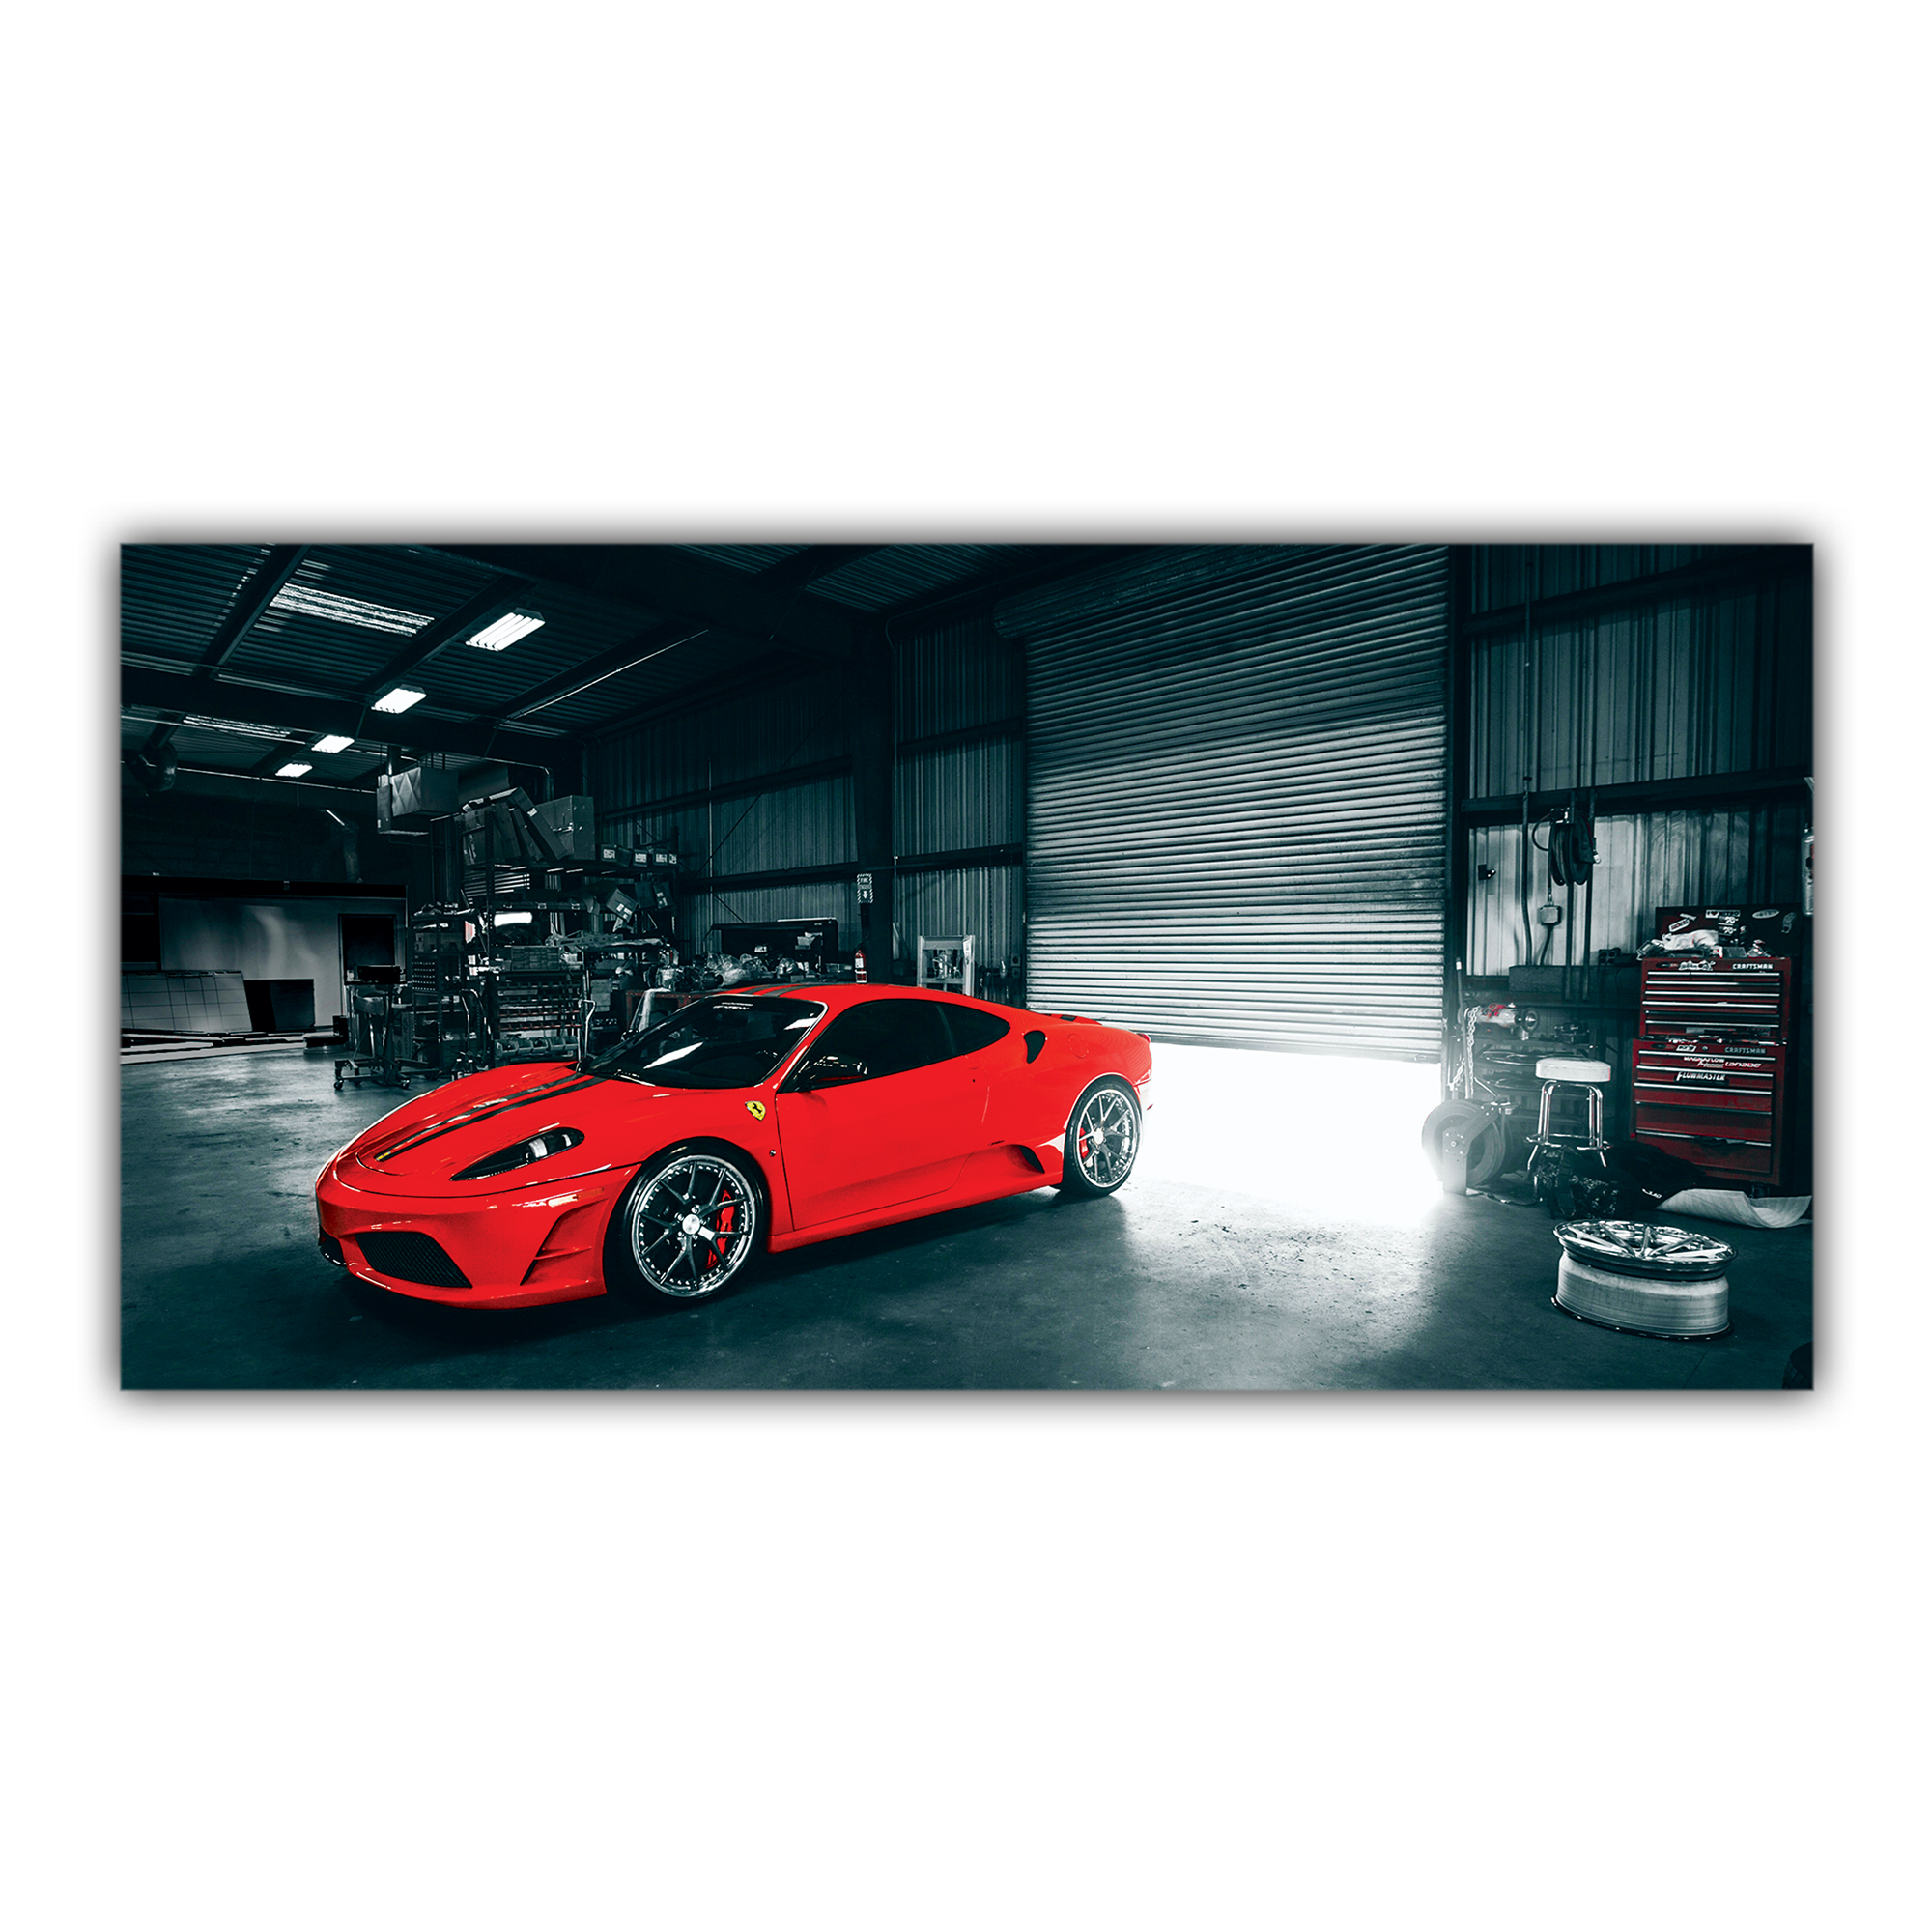 ferrari f430 scuderia sport italienne rouge voiture. Black Bedroom Furniture Sets. Home Design Ideas